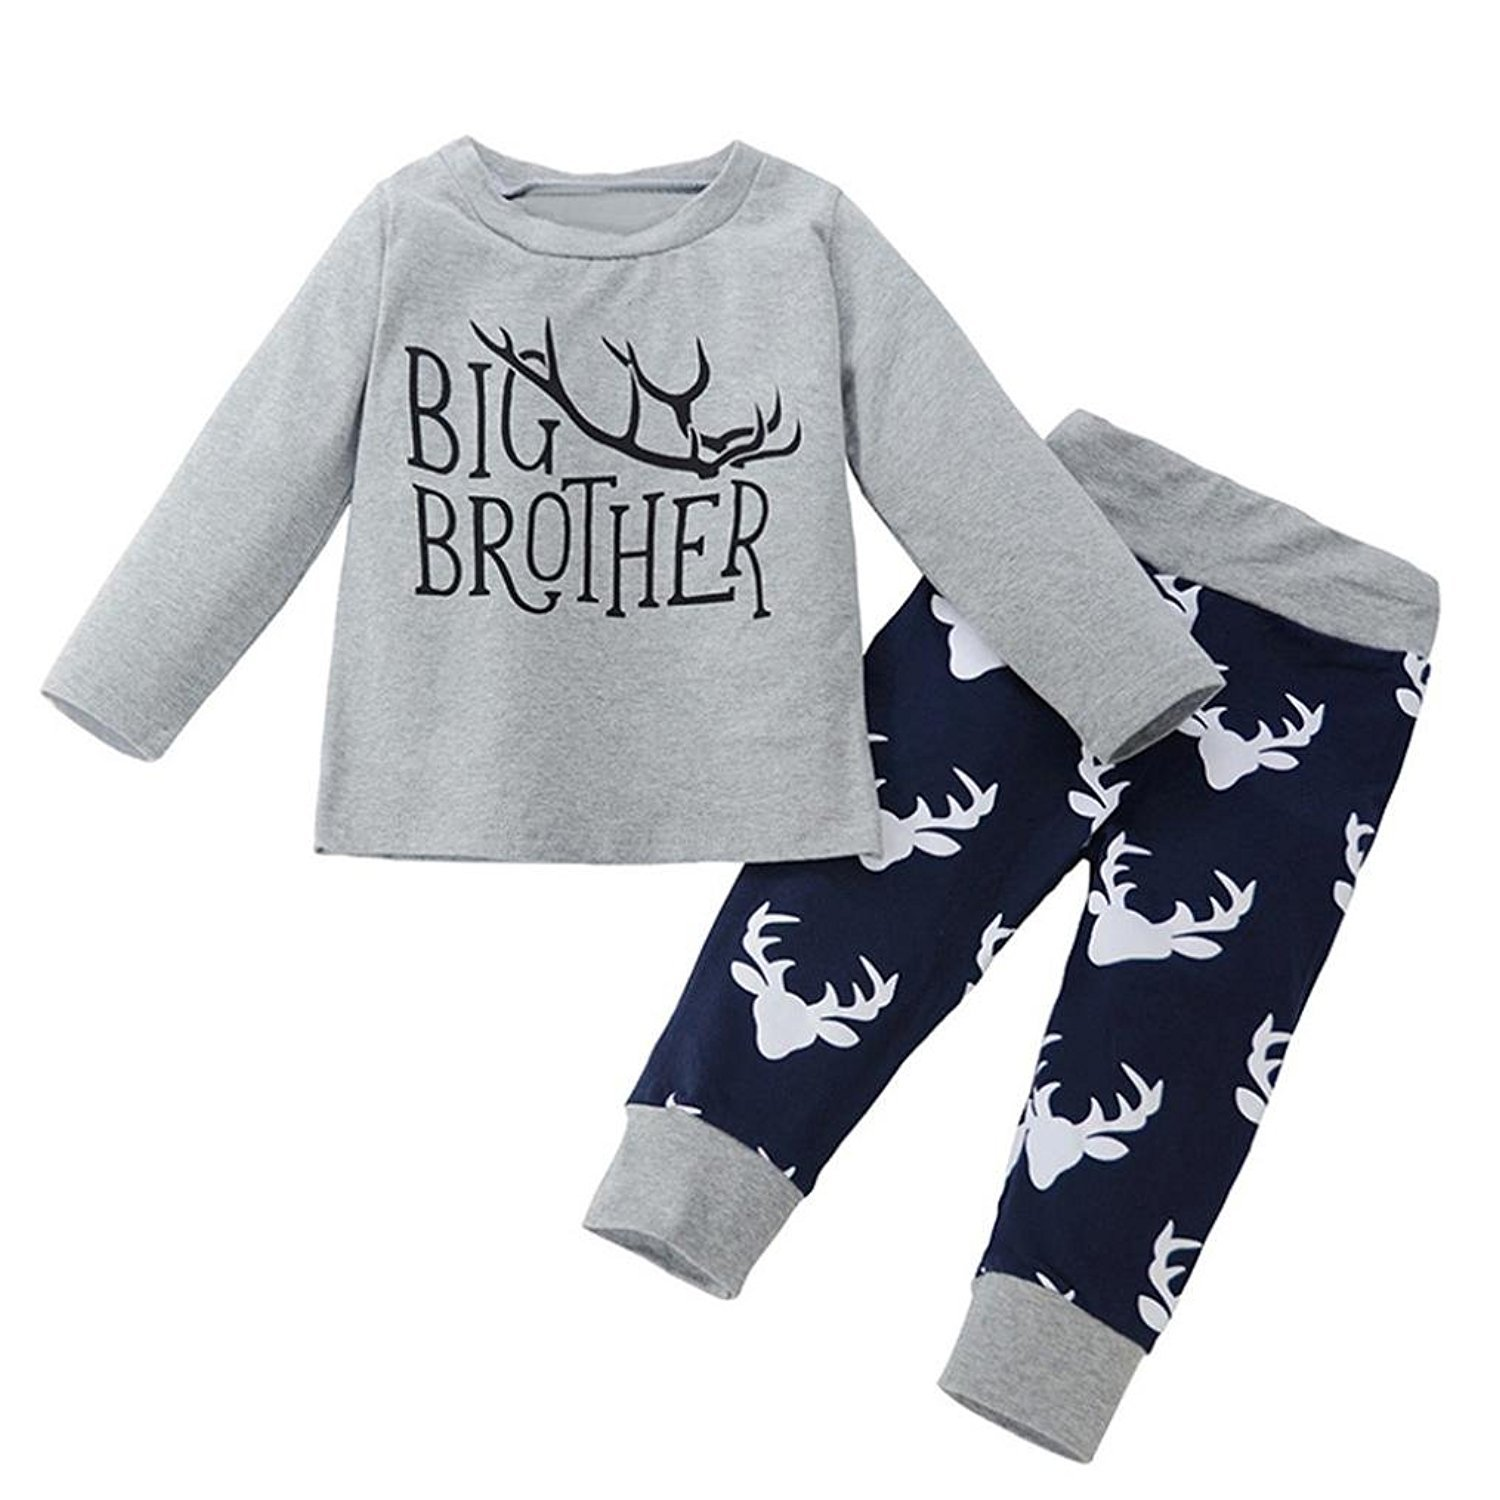 Webla Toddler Baby Boys Deer Print Clothes Set Letter Big Brother T-shirt +Trousers Set for 1-4 Years Old